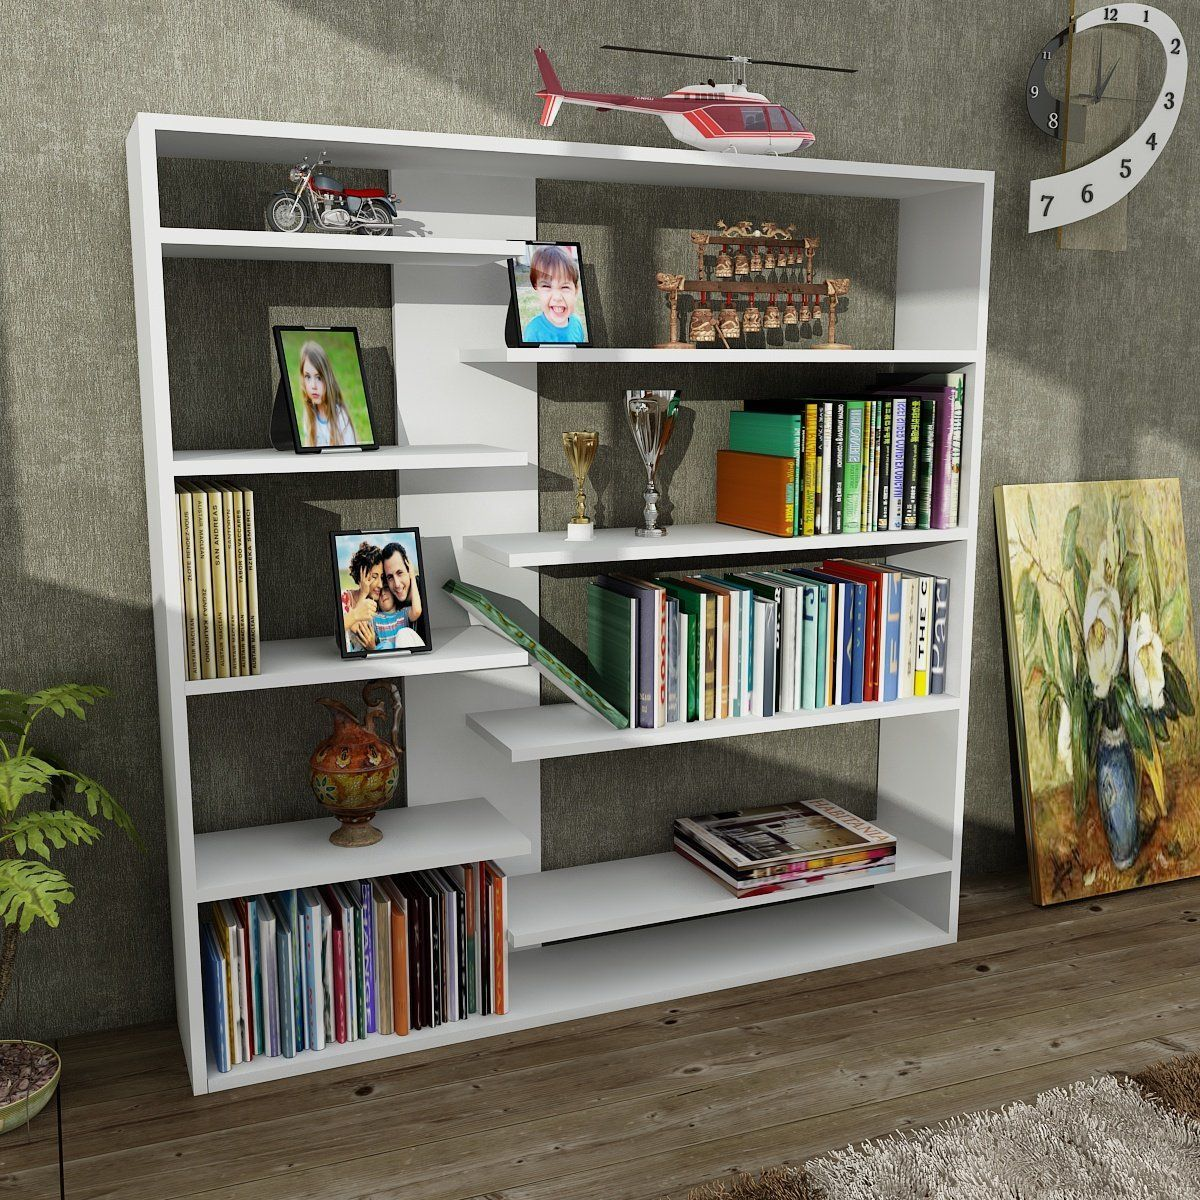 Bishop Modern Bookcase Shelving Unit